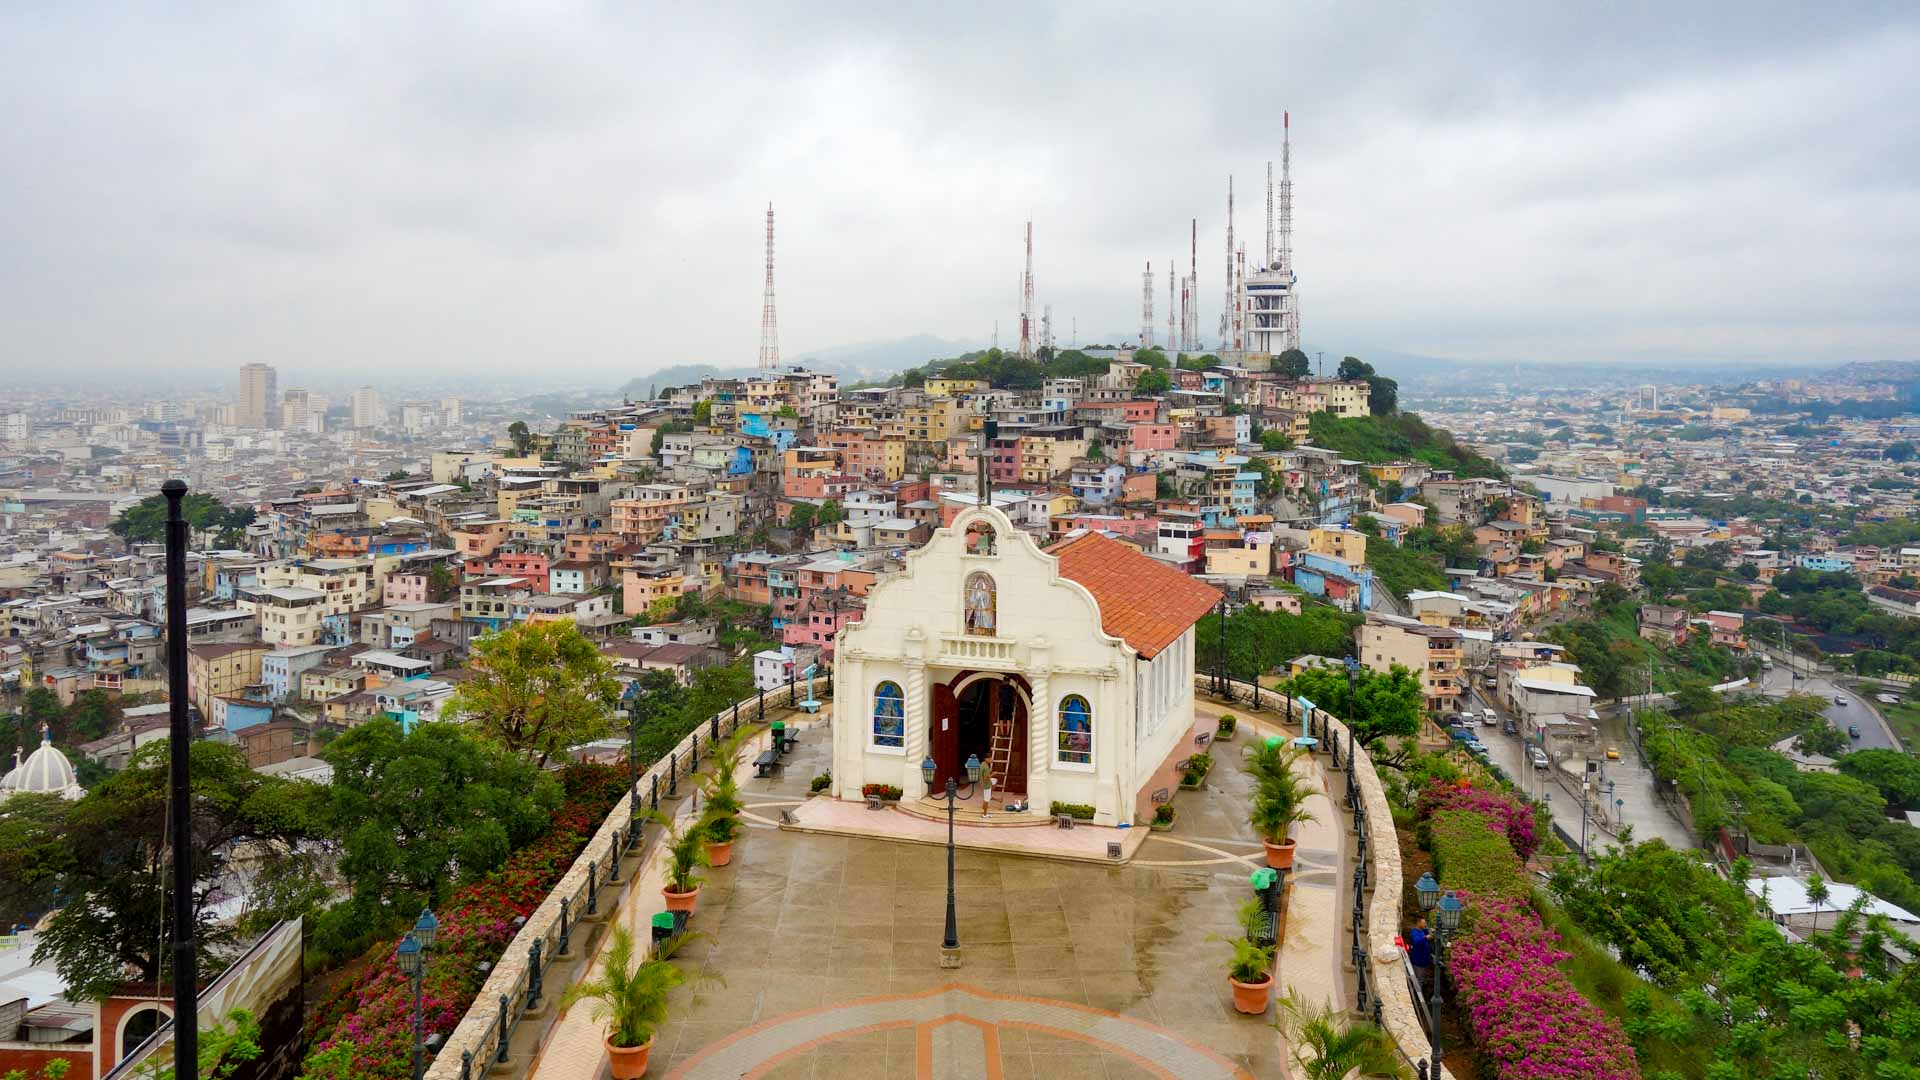 View from Cerro Santa Ana, Guayaquil